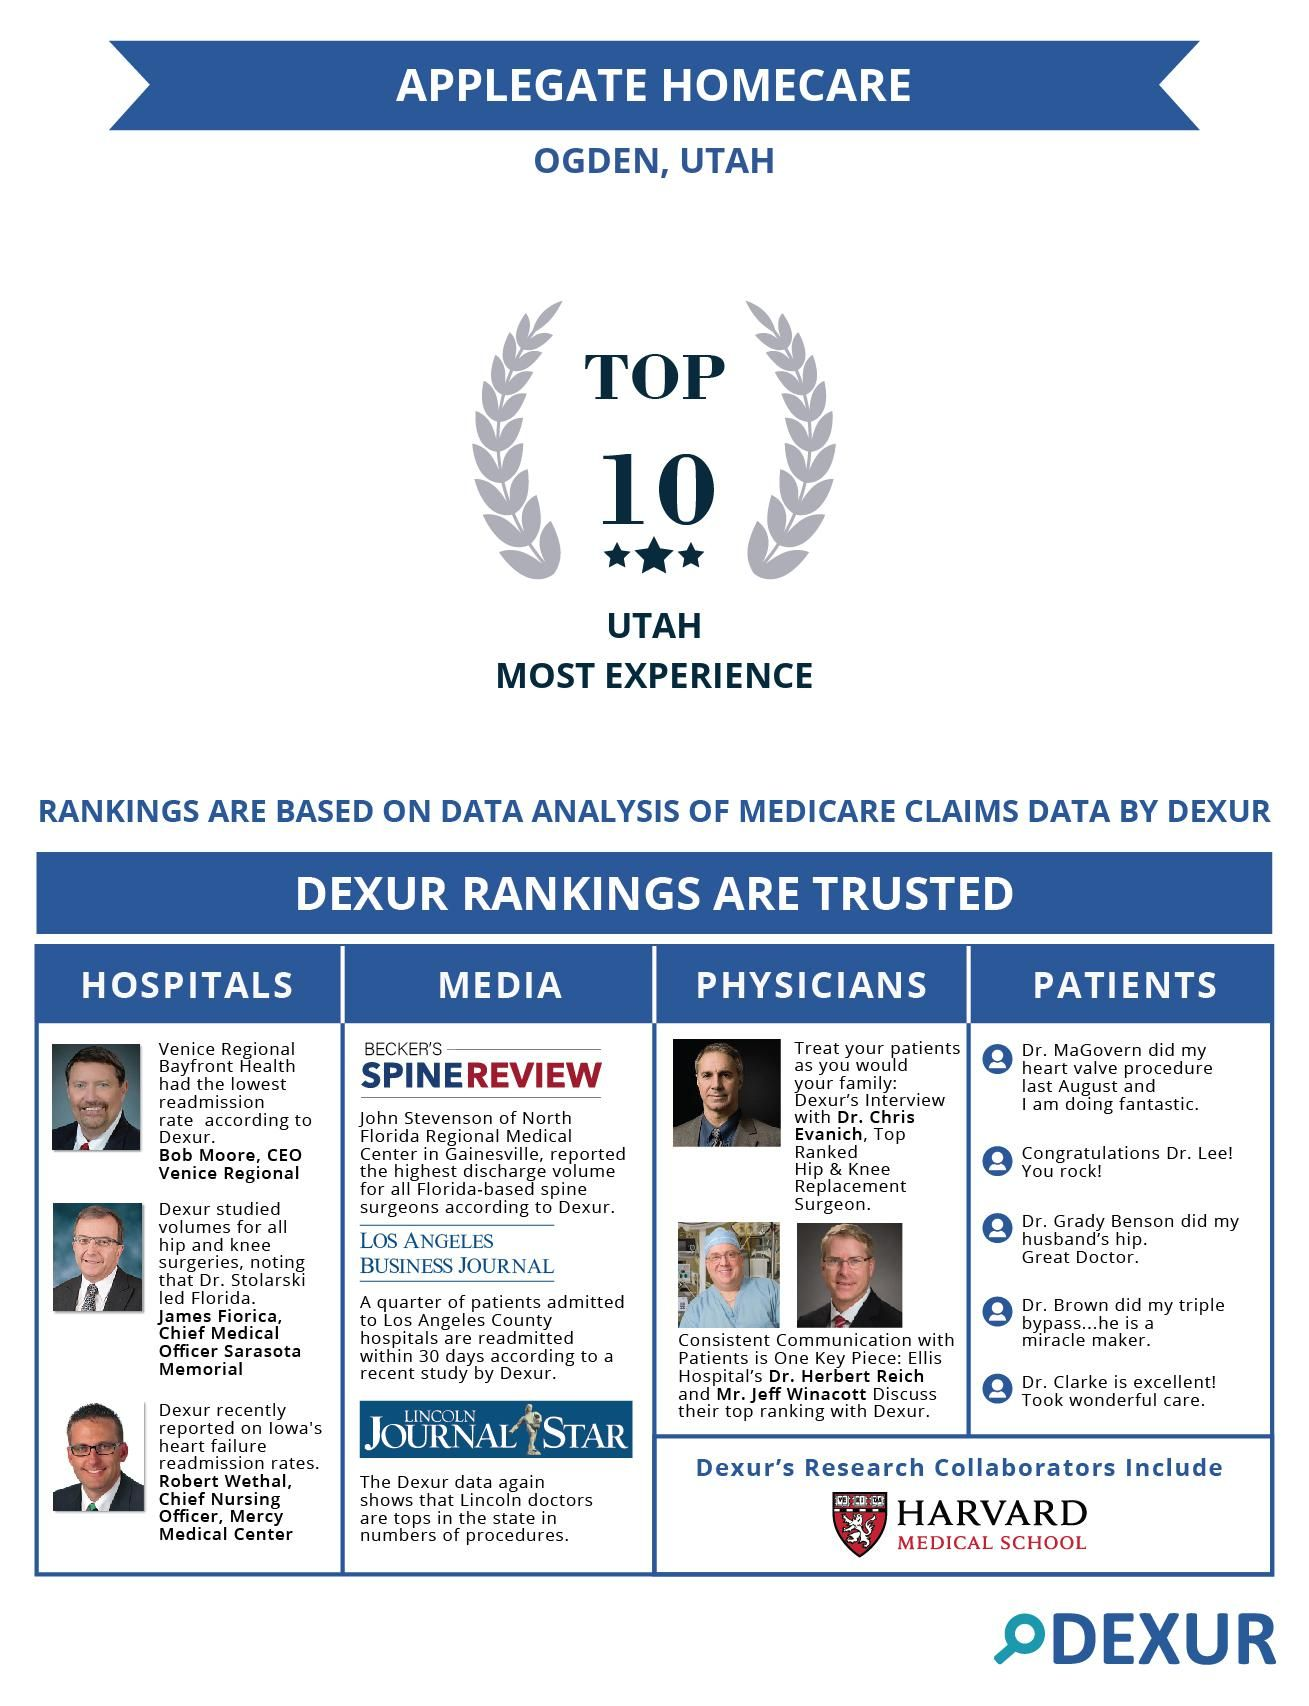 Applegate Homecare is among the top ranked Home Health